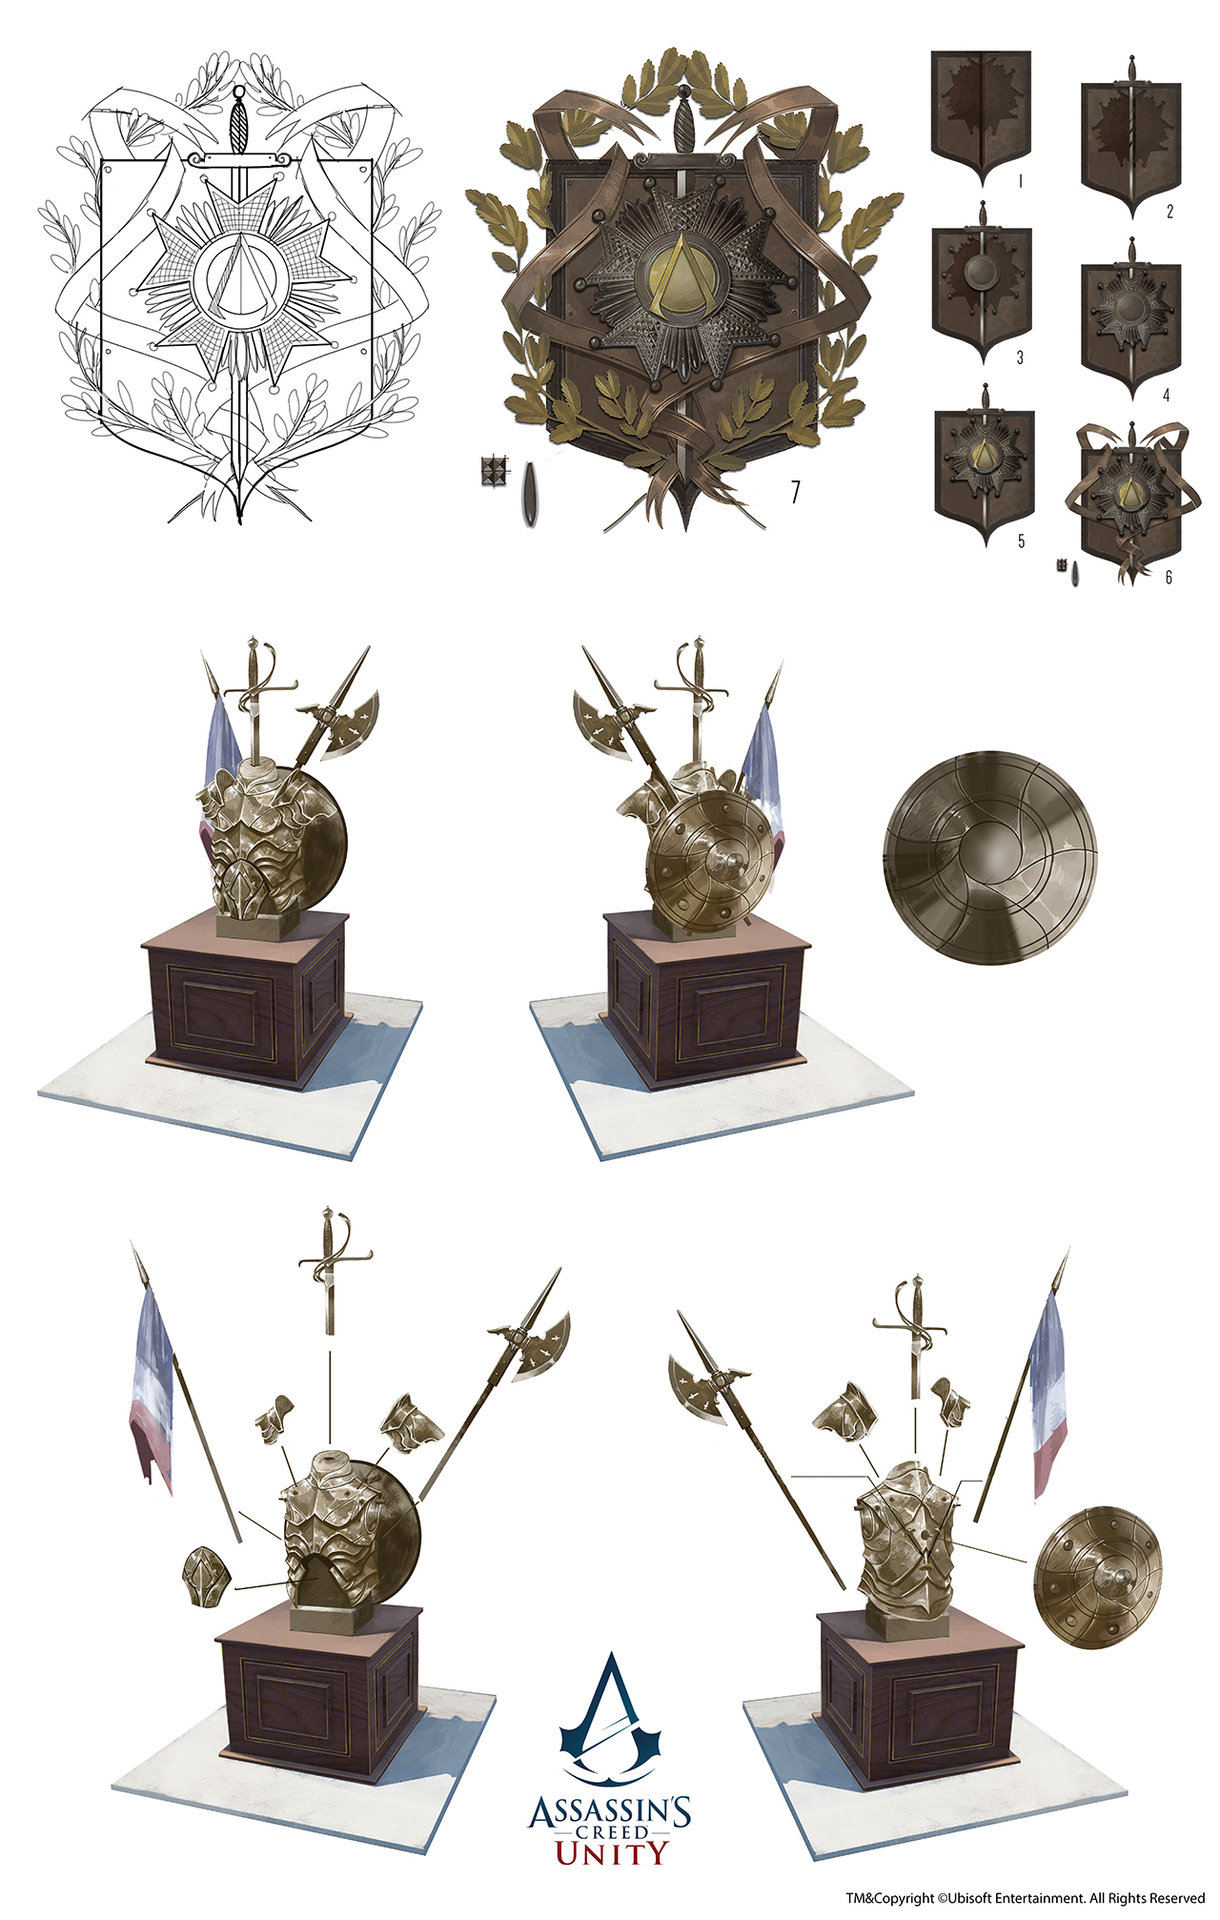 Covered clipart assassin's creed unity Trophy Creed /// room Assassin's